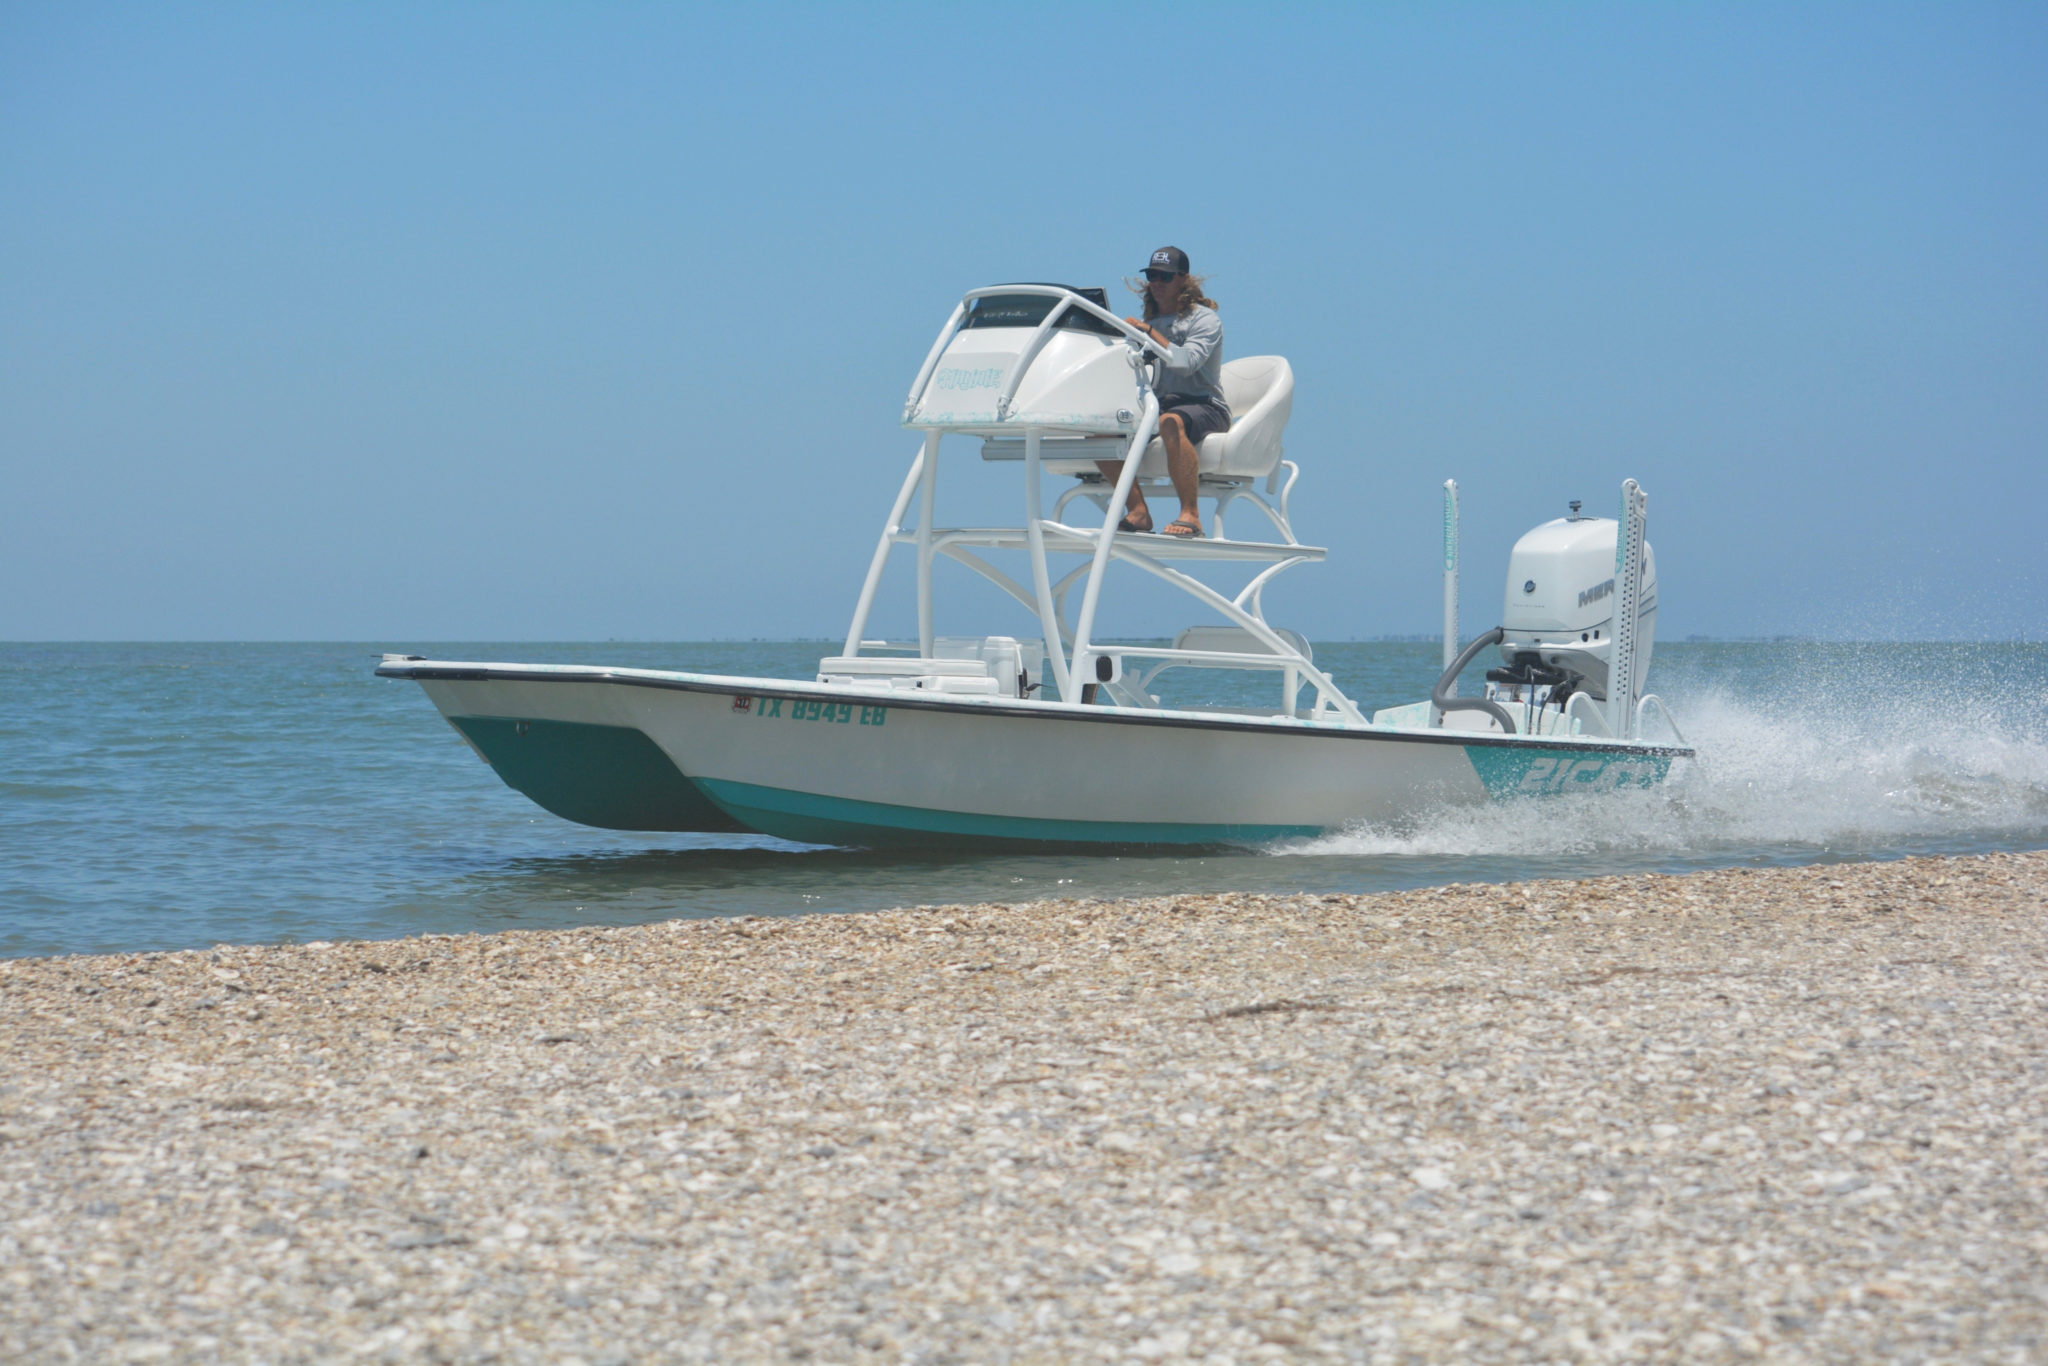 The 21 Super Cat From Haynie Custom Bay Boats Gulf Coast Mariner